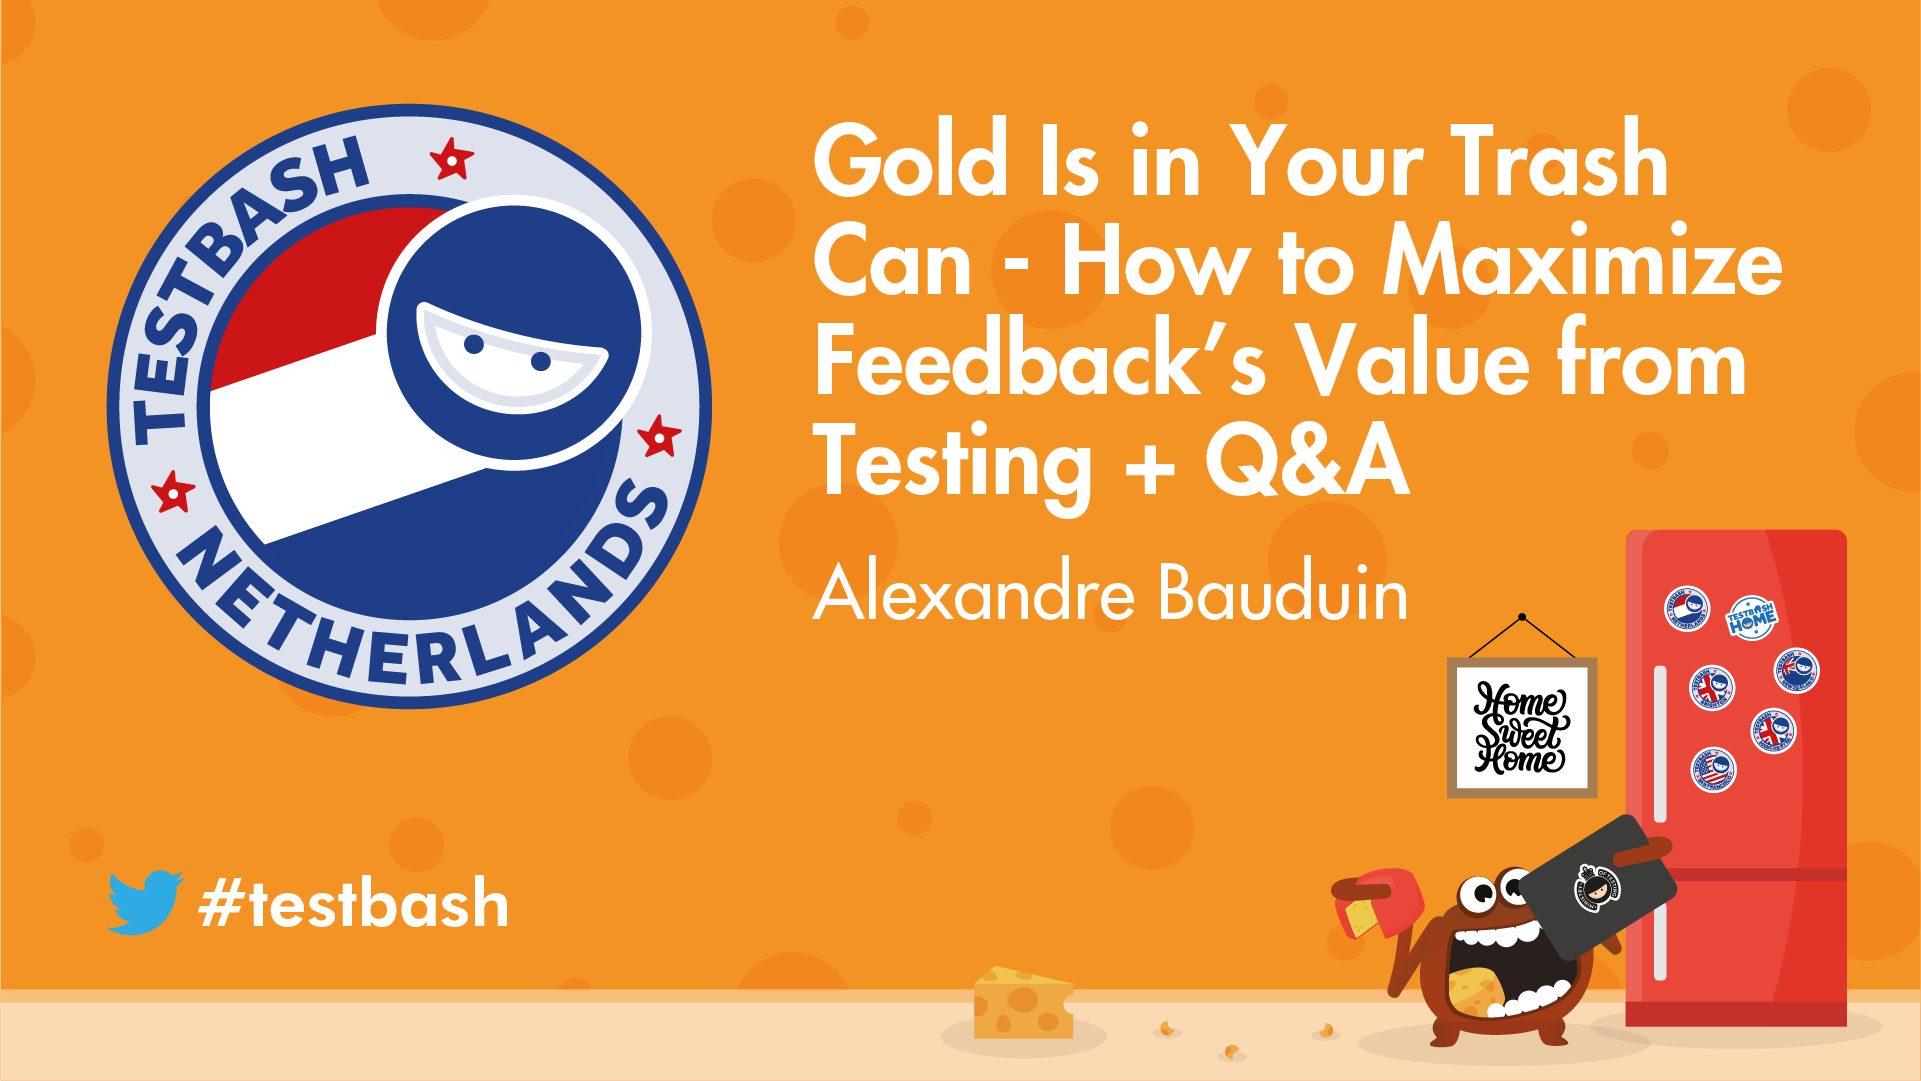 Gold Is in Your Trash Can - How to Maximize Feedback's Value from Testing - Alexandre Bauduin